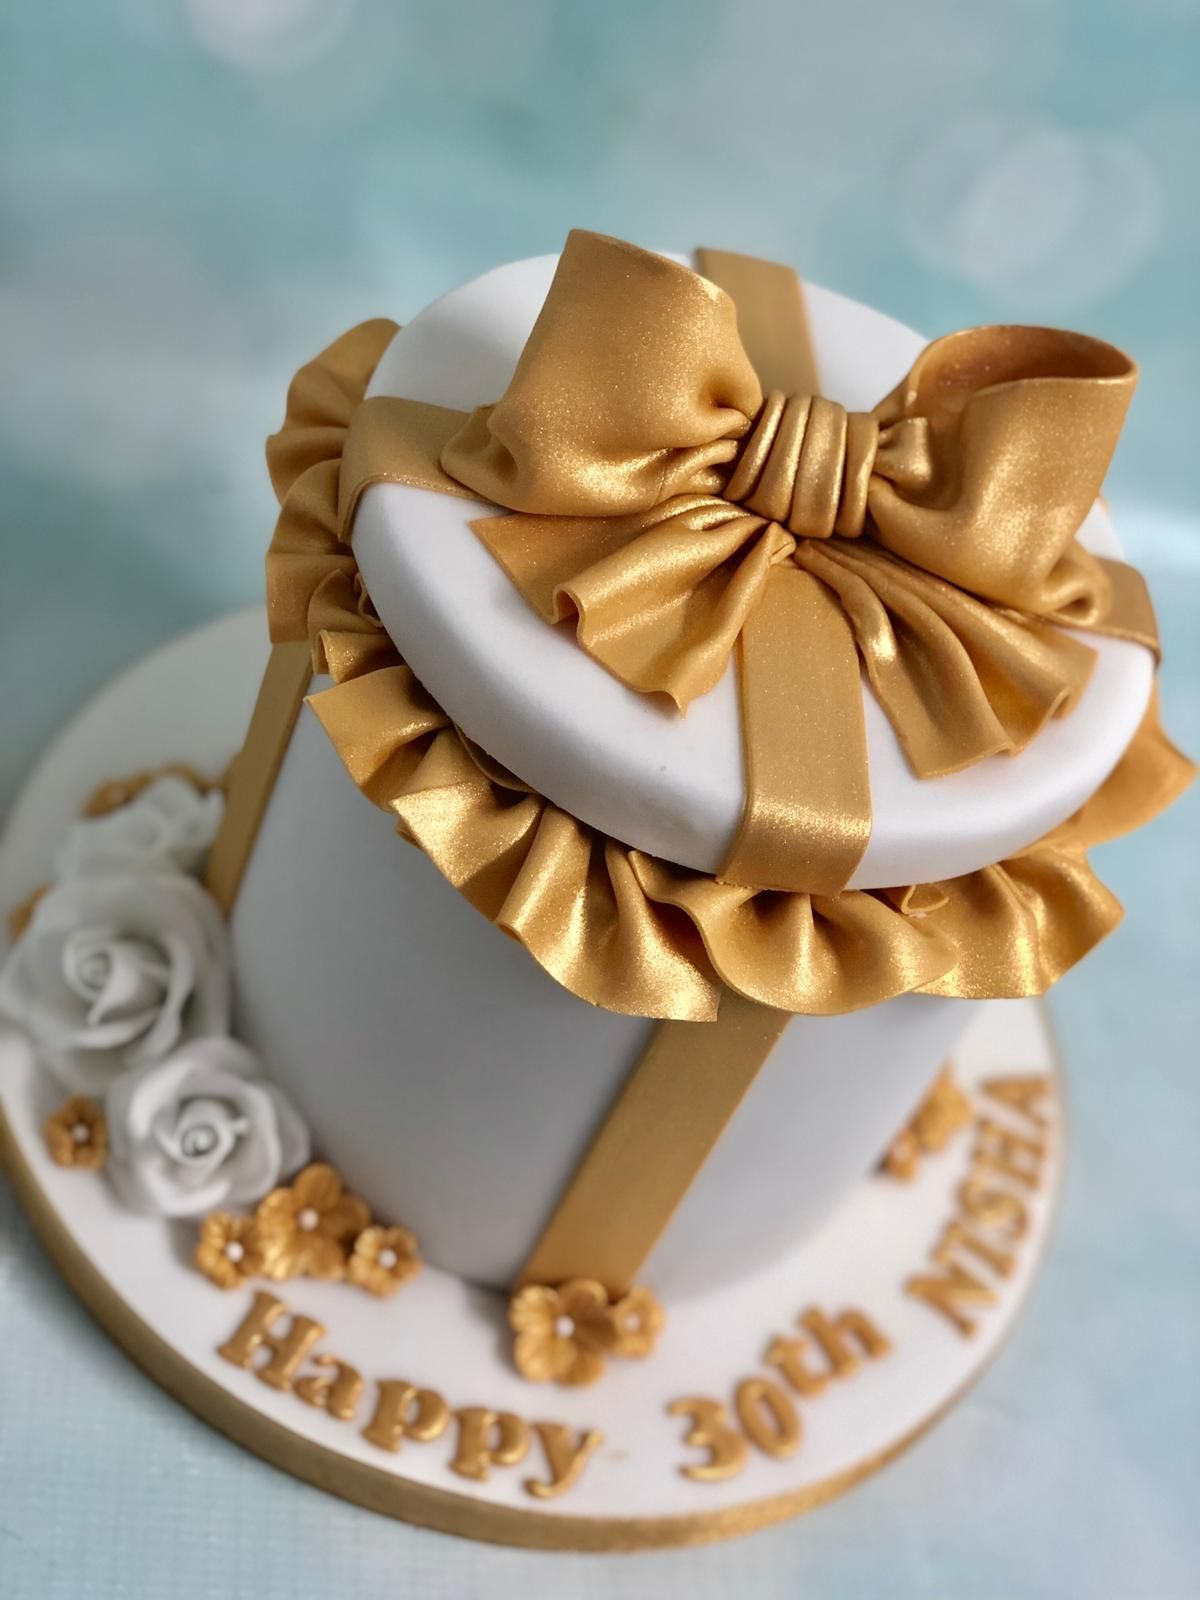 Gold white bow gift box birthday cake (With images) Gift